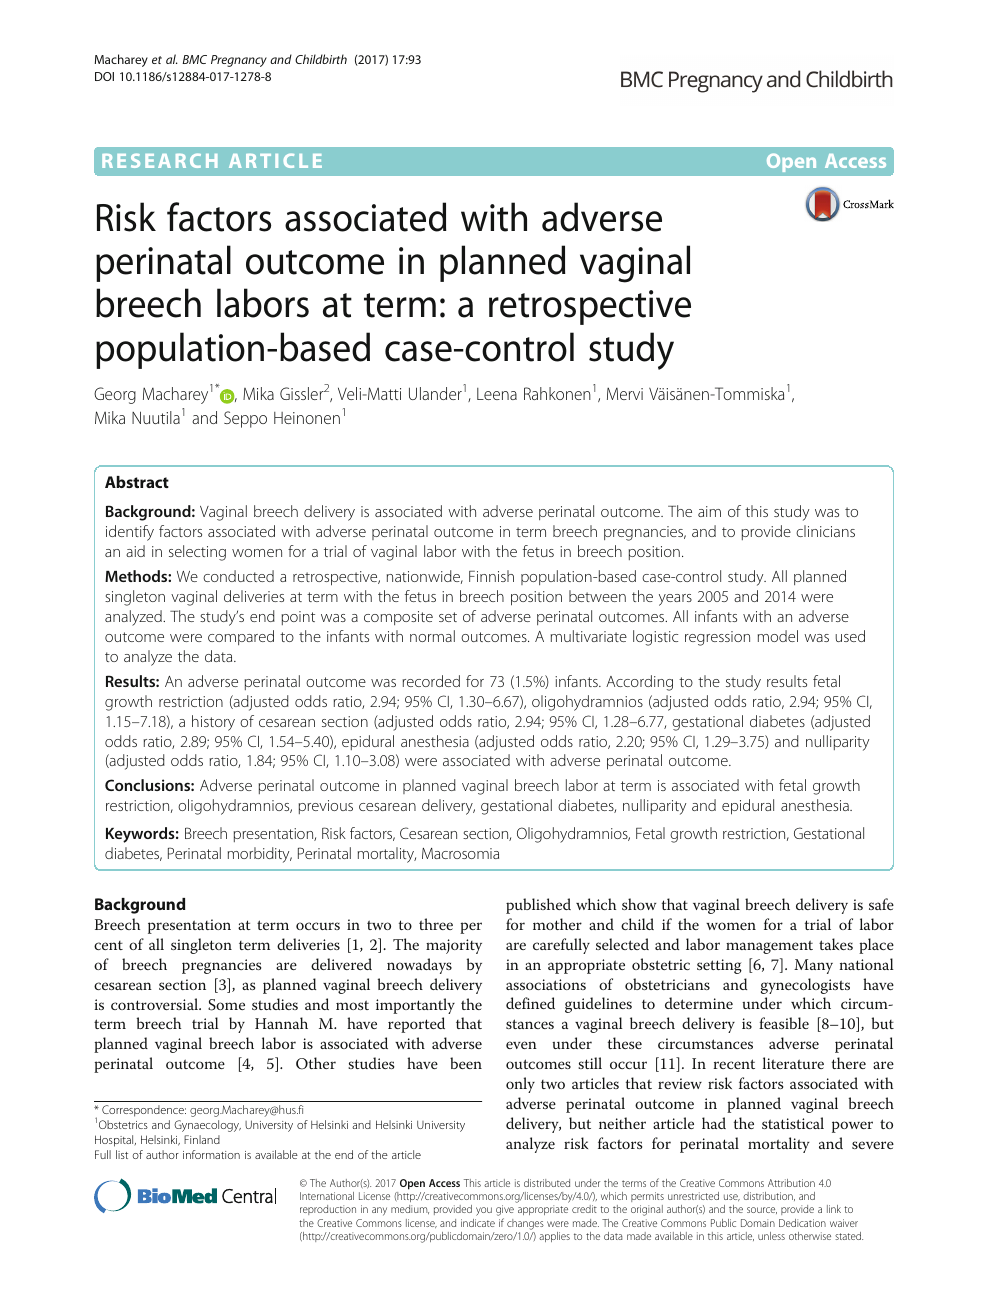 Risk factors associated with adverse perinatal outcome in planned